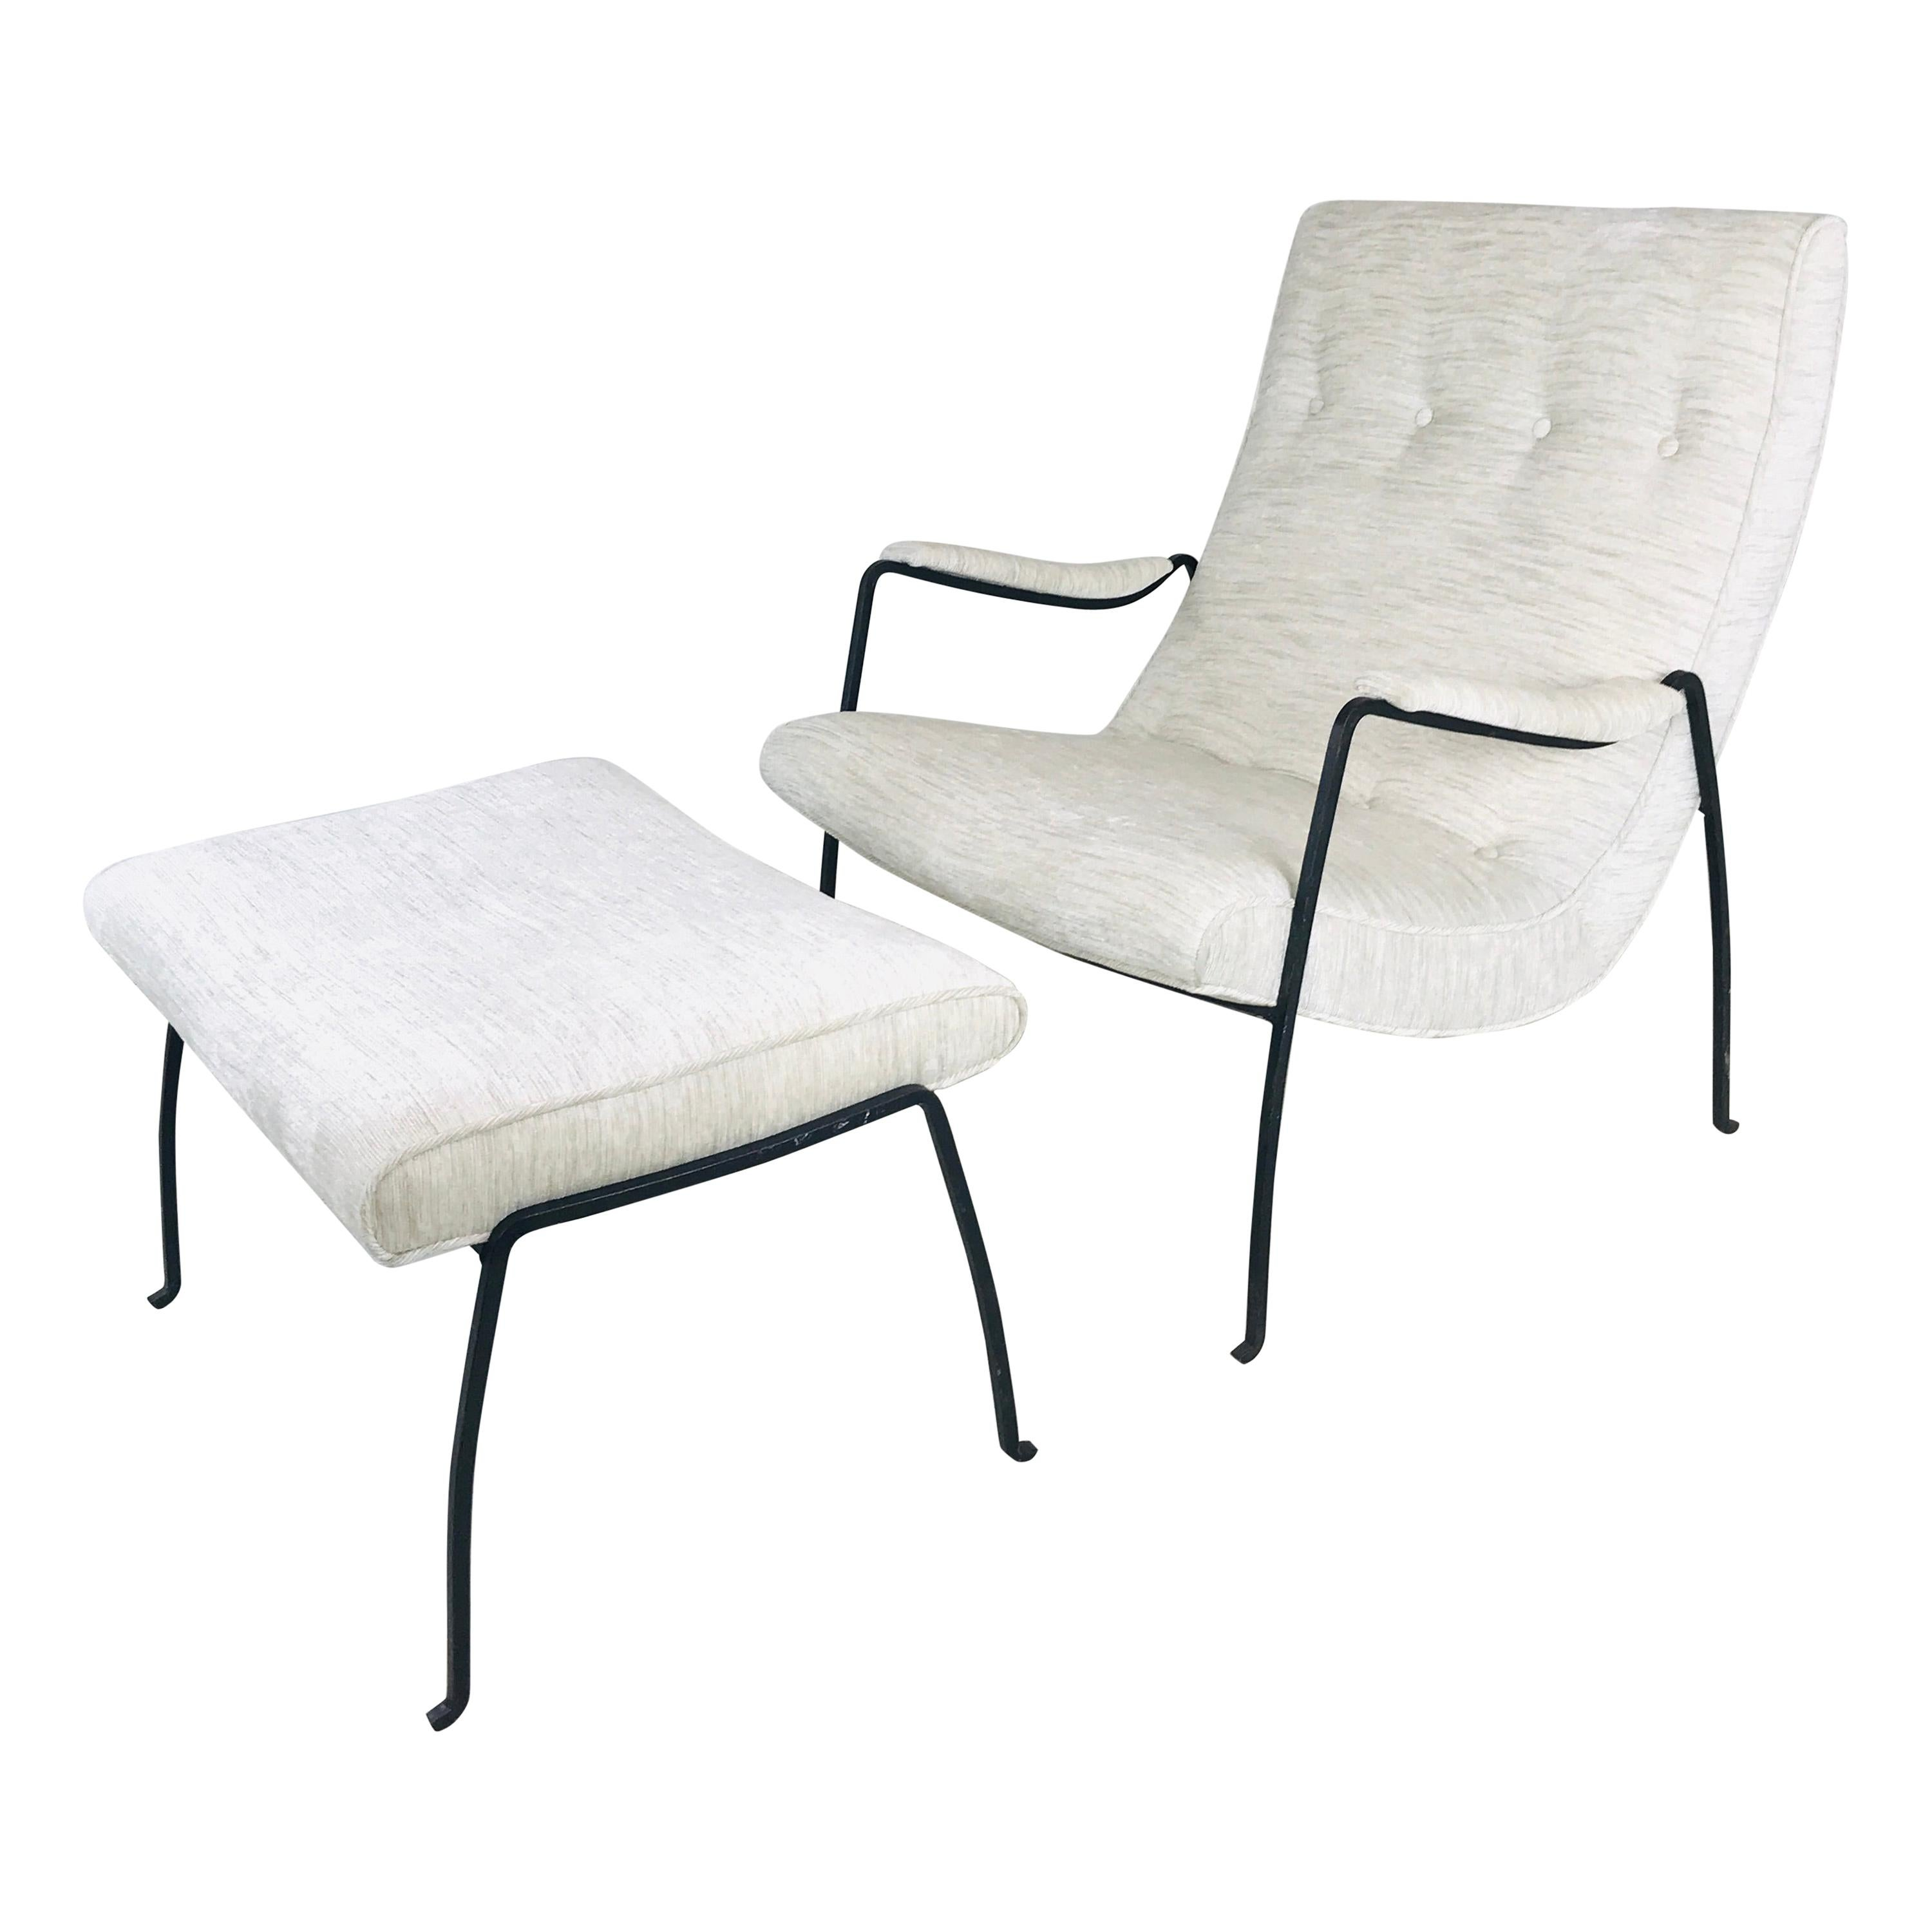 Iron Framed Lounge Chair and Ottoman by Milo Baughman for Pacifica Iron Works